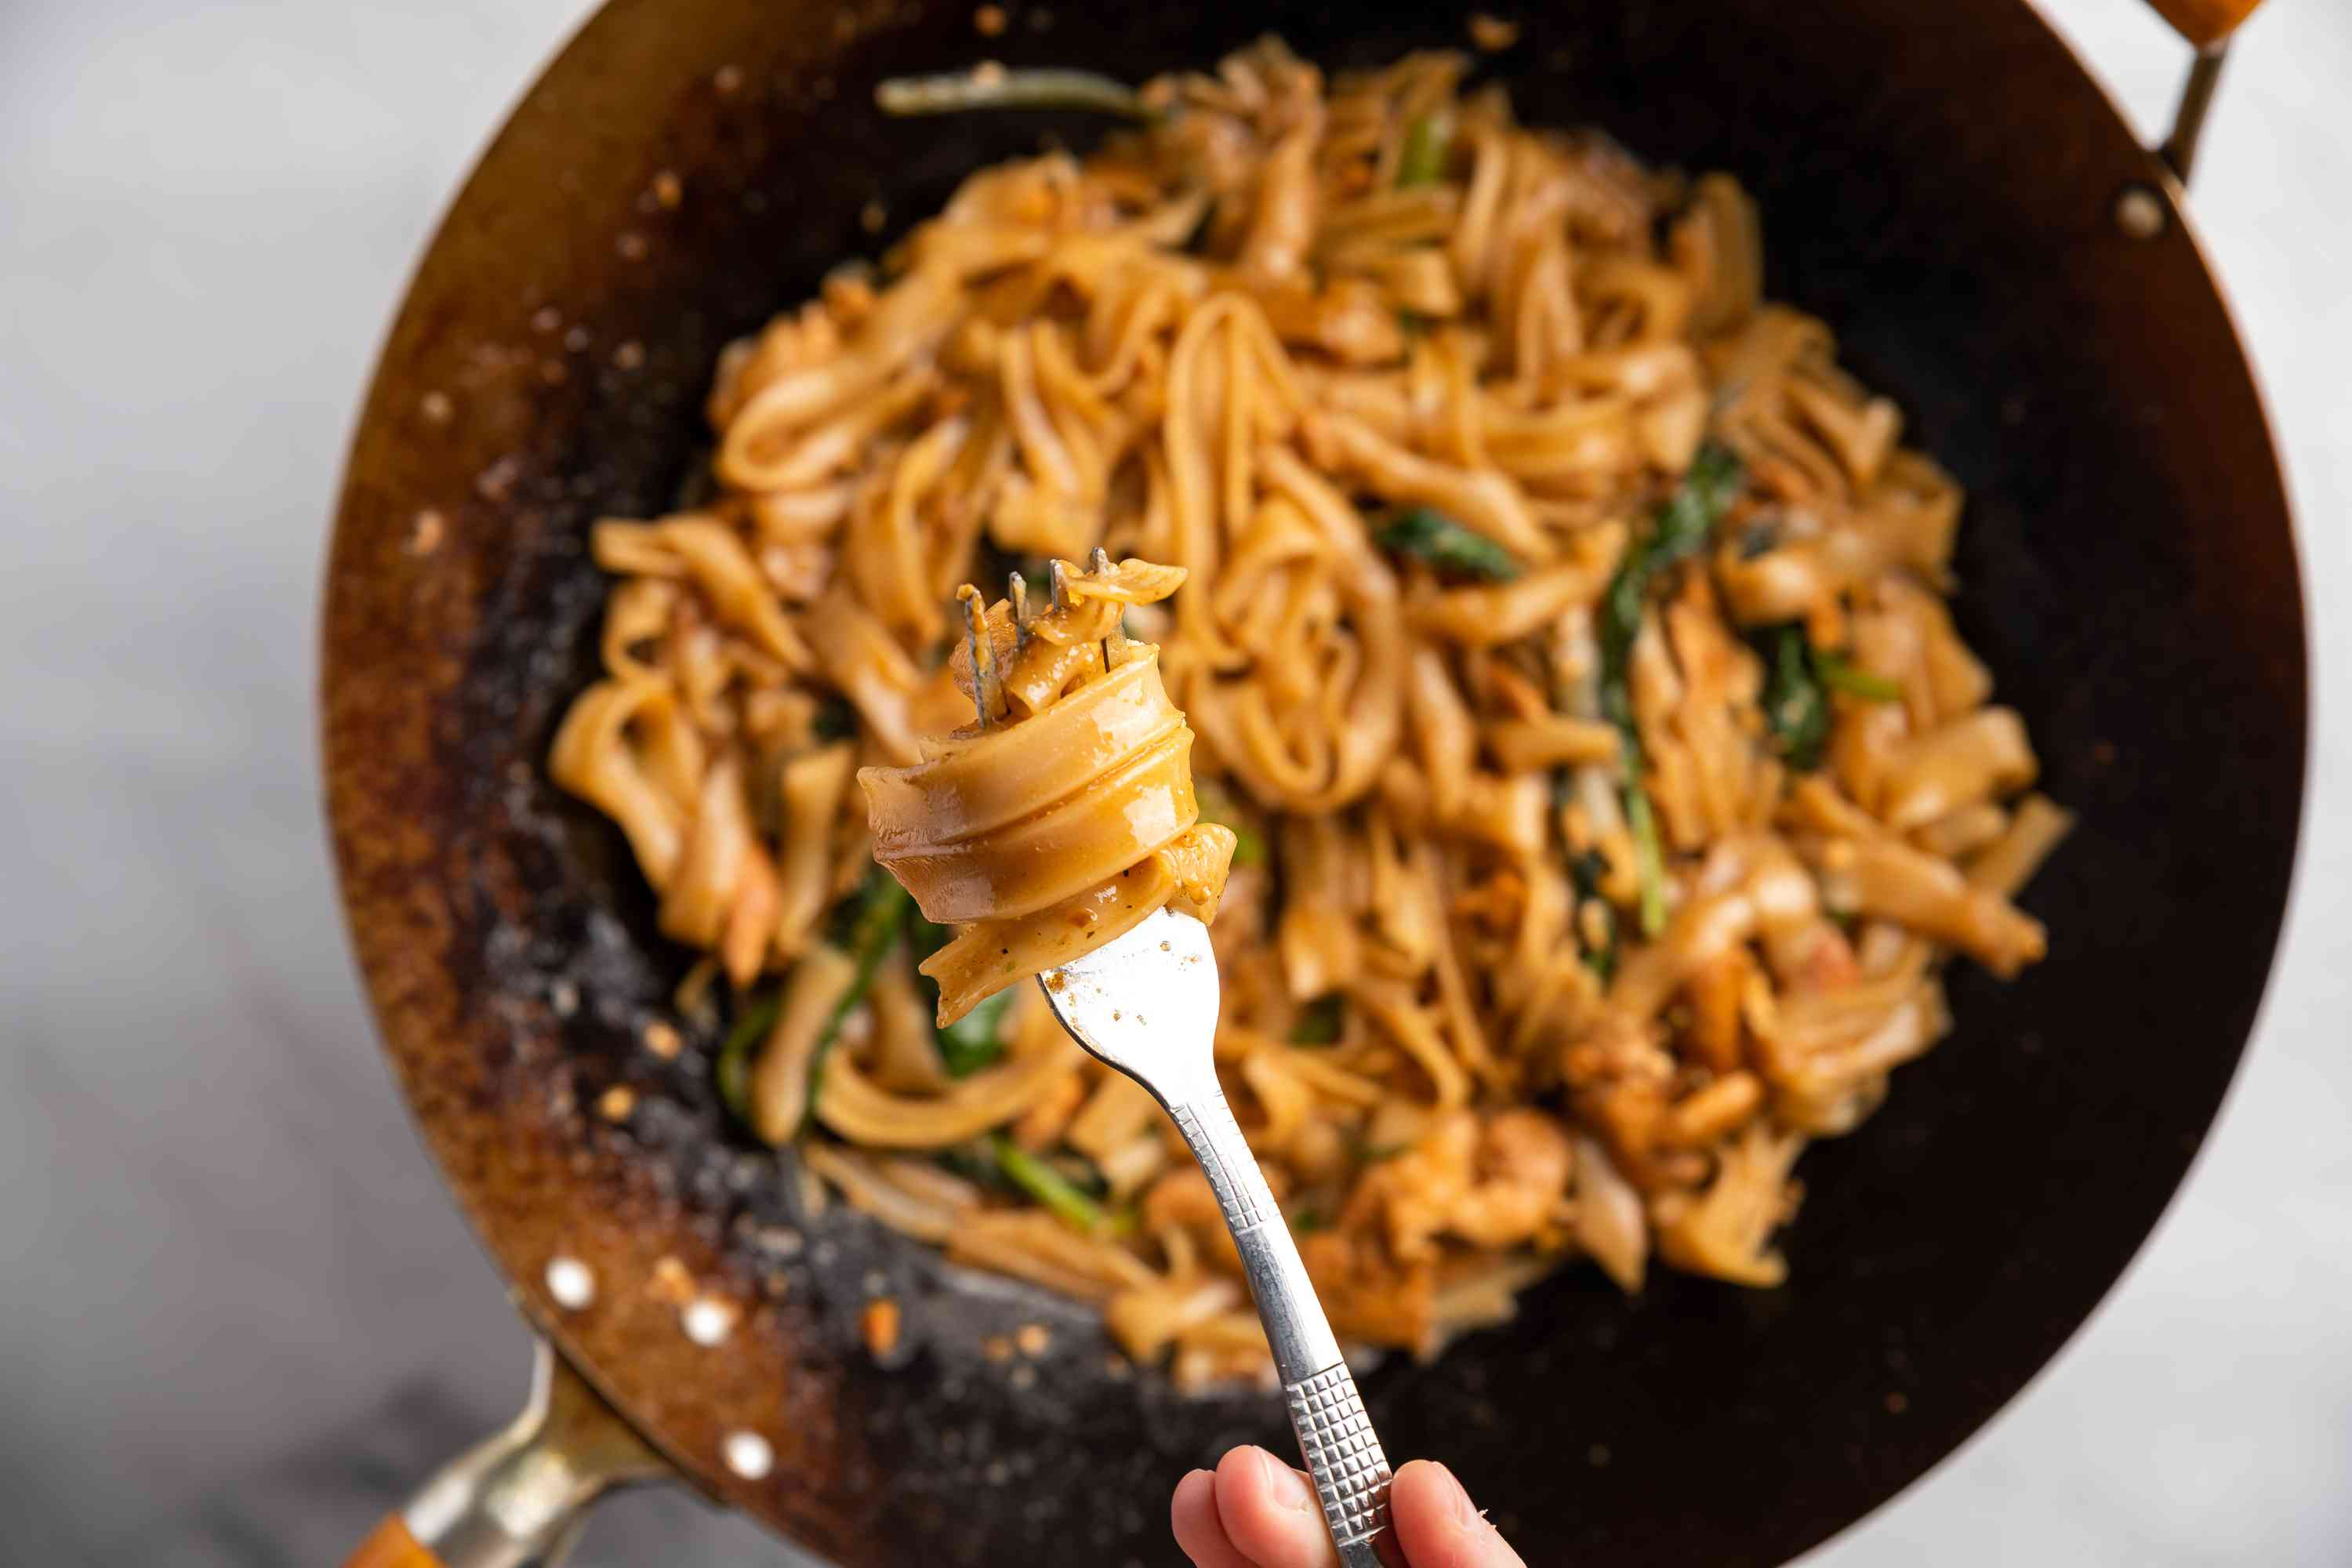 Chicken Pad See Ew (Broad Rice Noodles Fried With Soy Sauce) in a wok